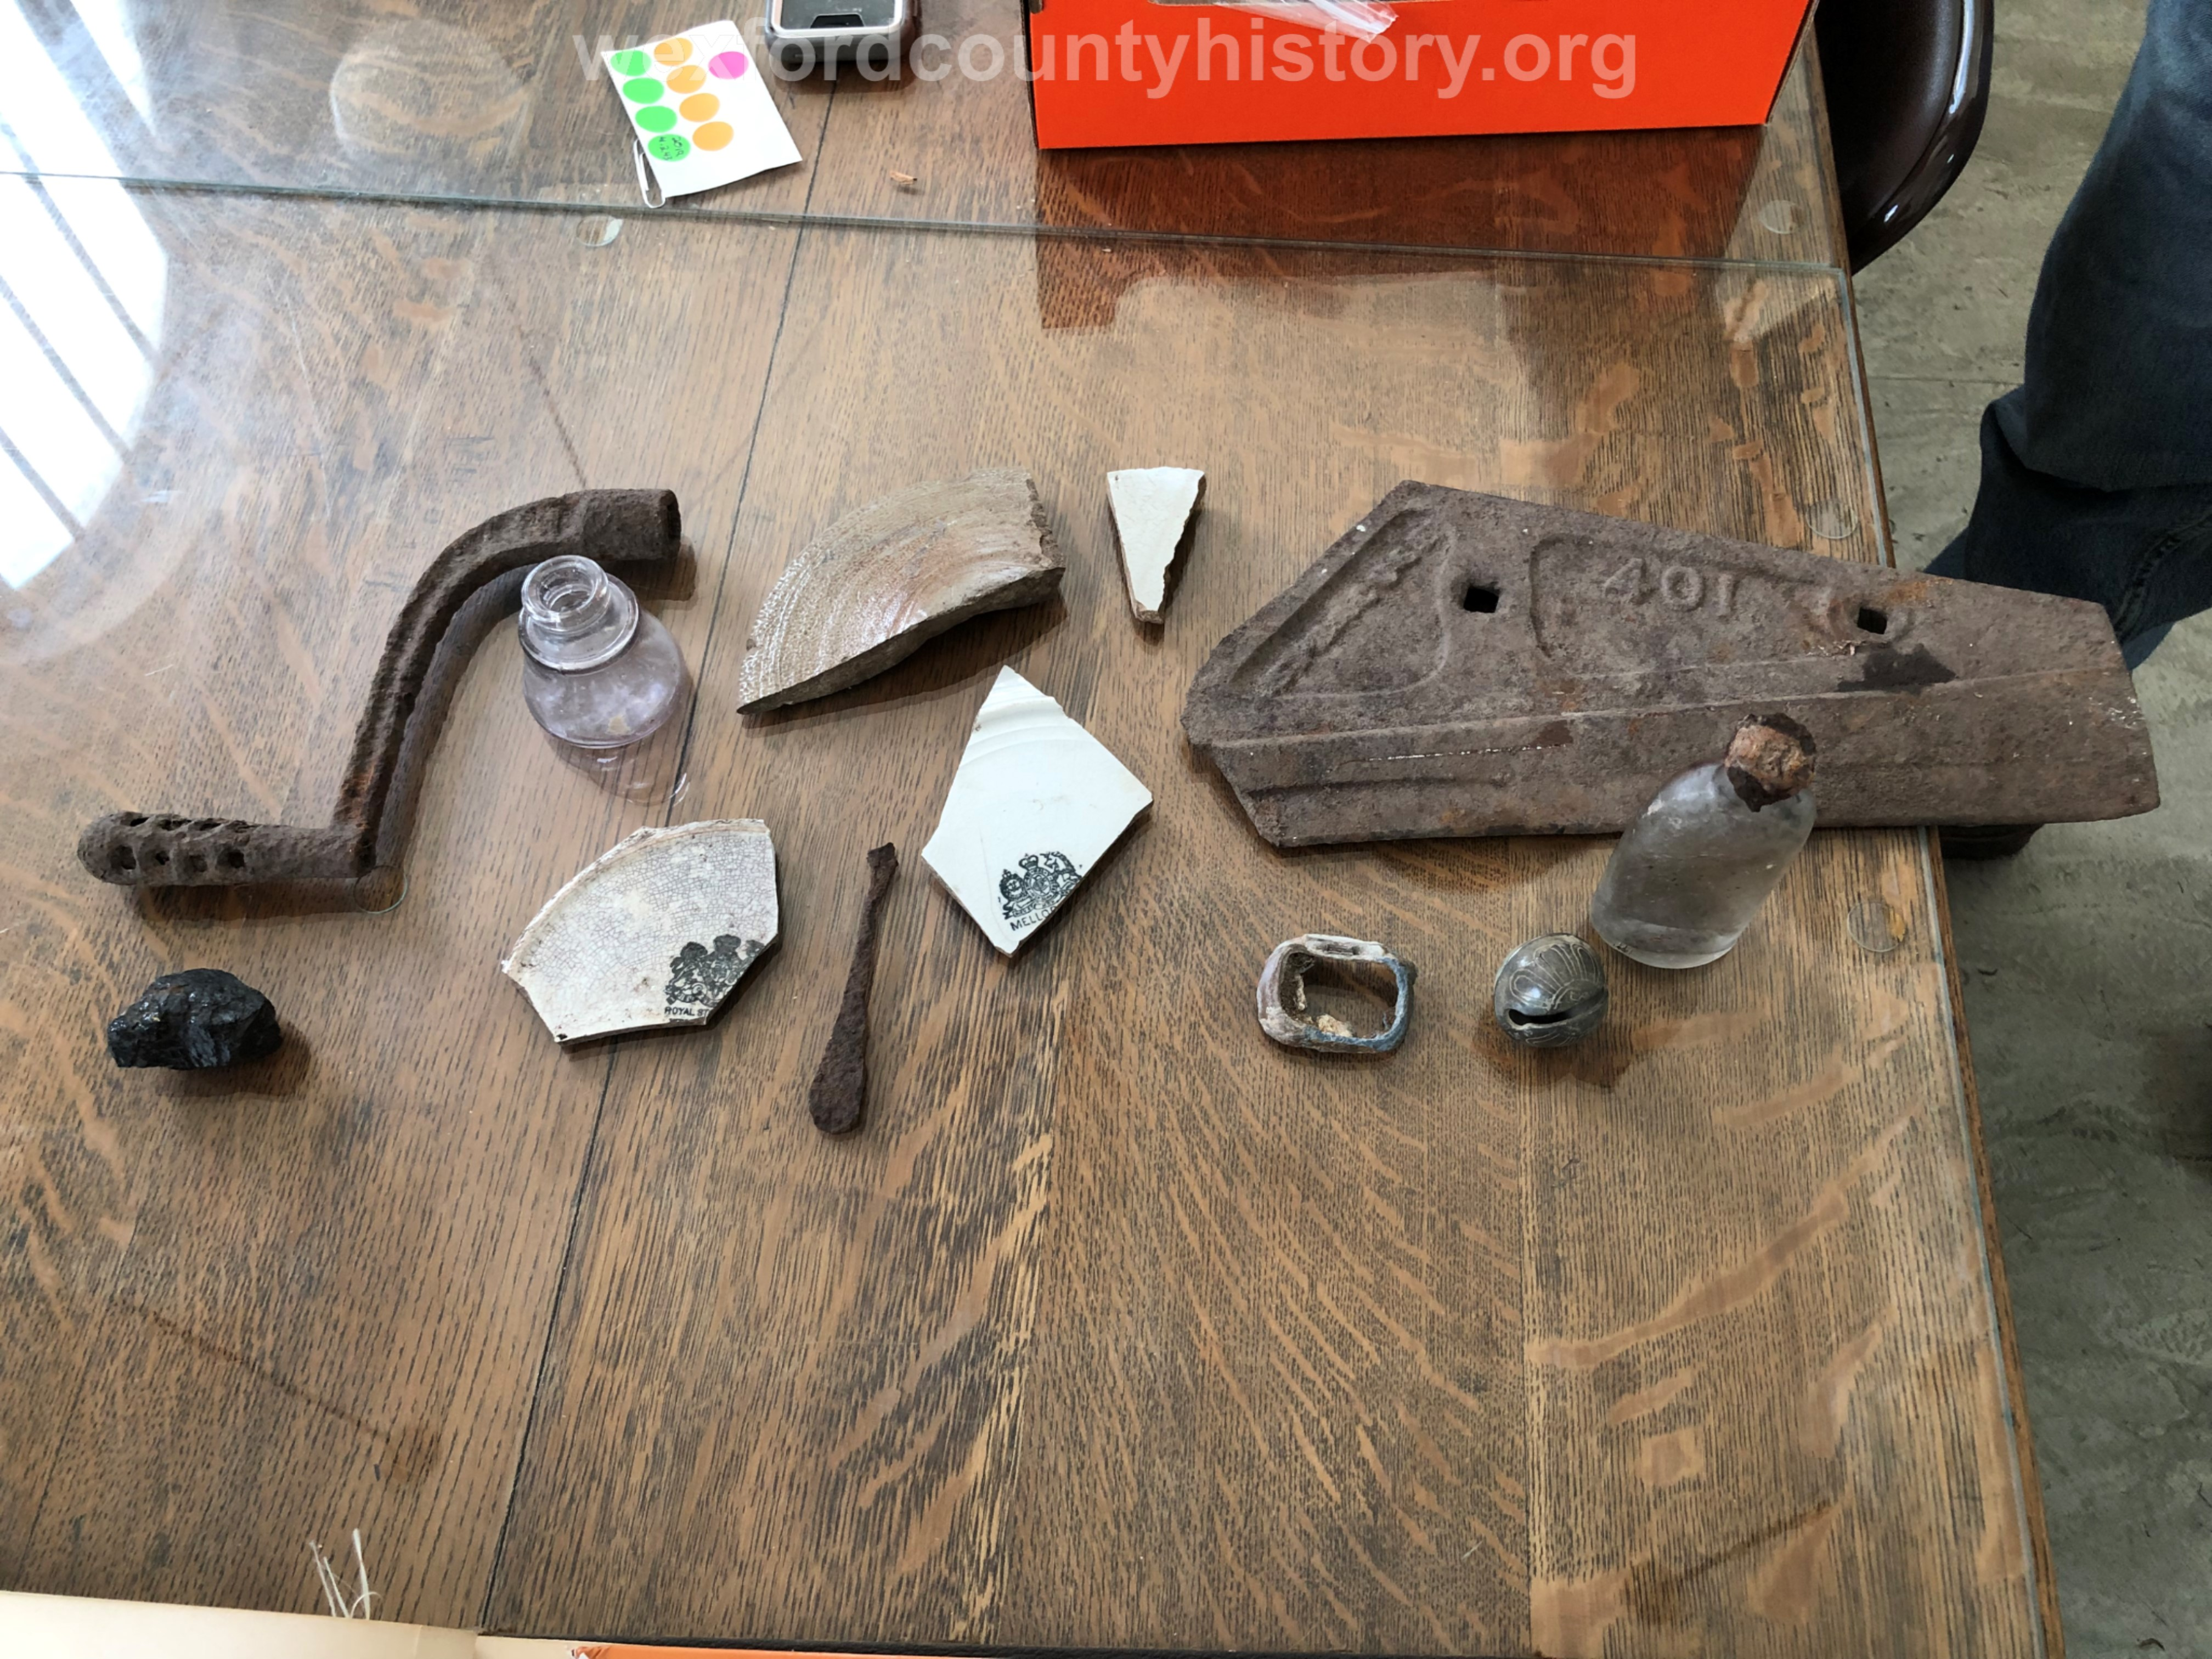 Wexford-County-Objects-Plottsville-Remains-Possibly-7